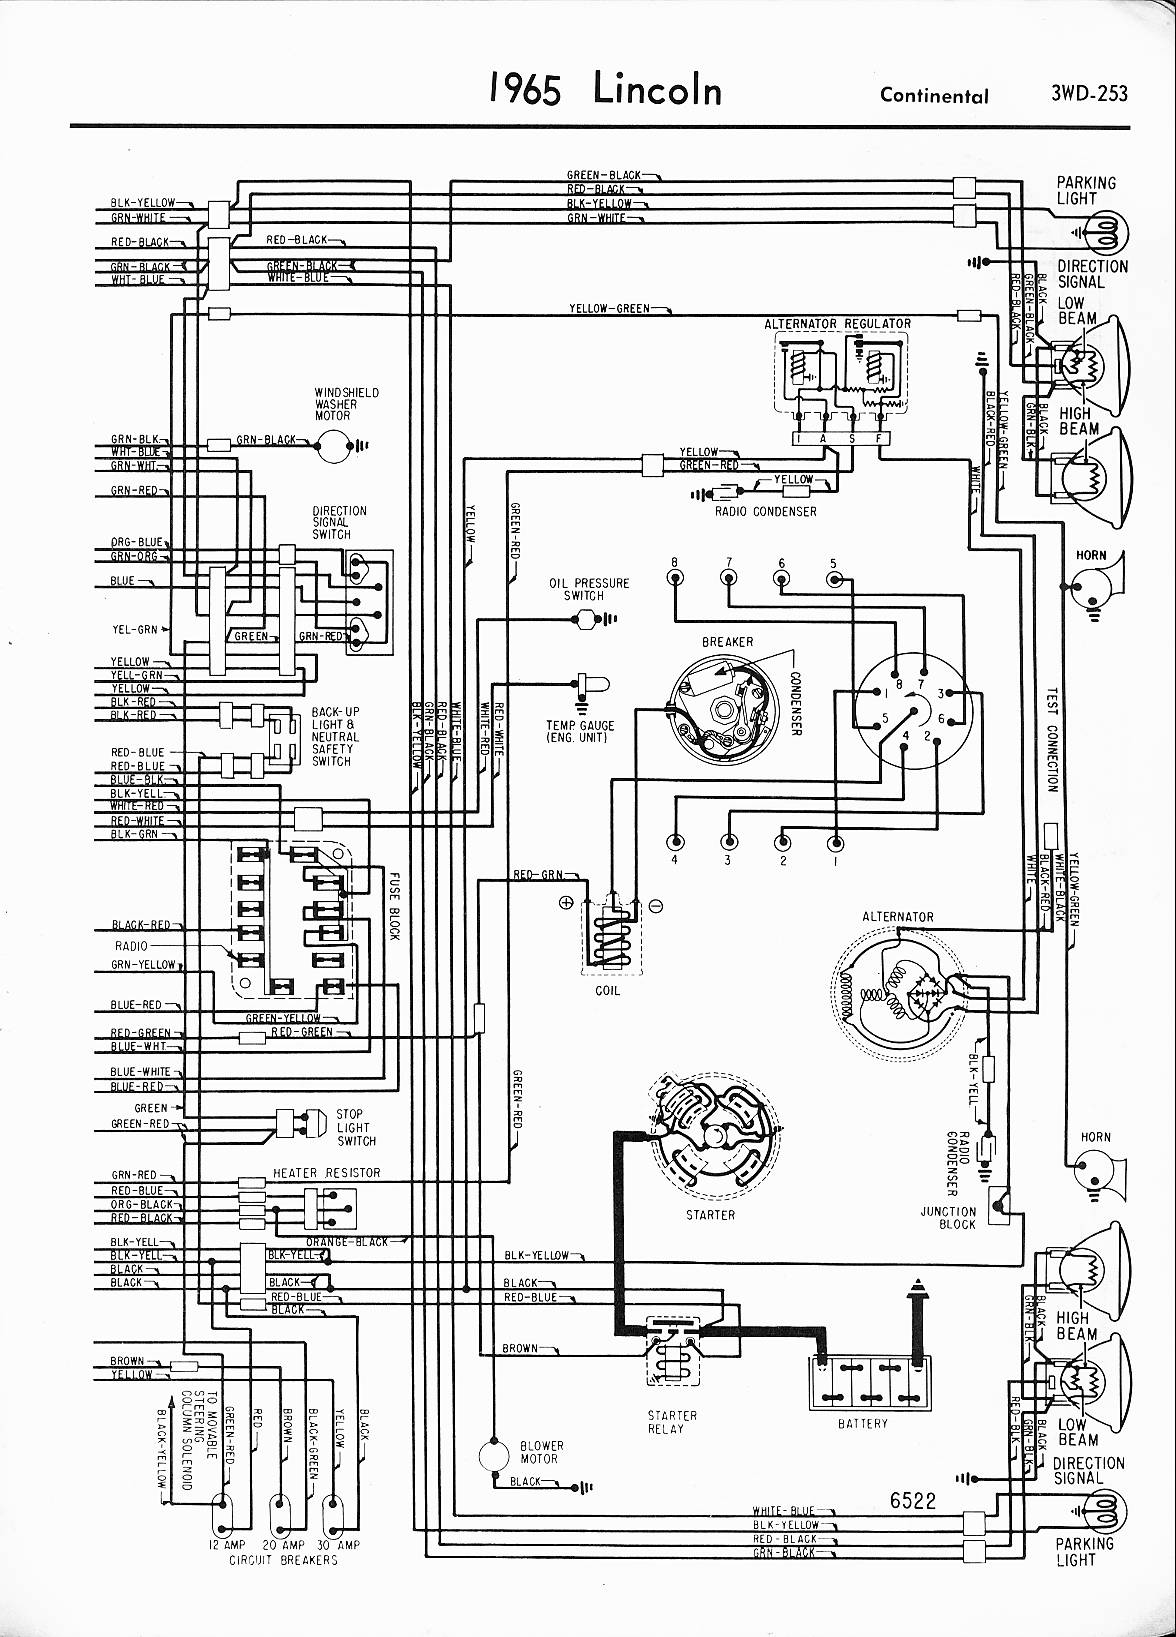 1996 lincoln continental alternator wiring diagram